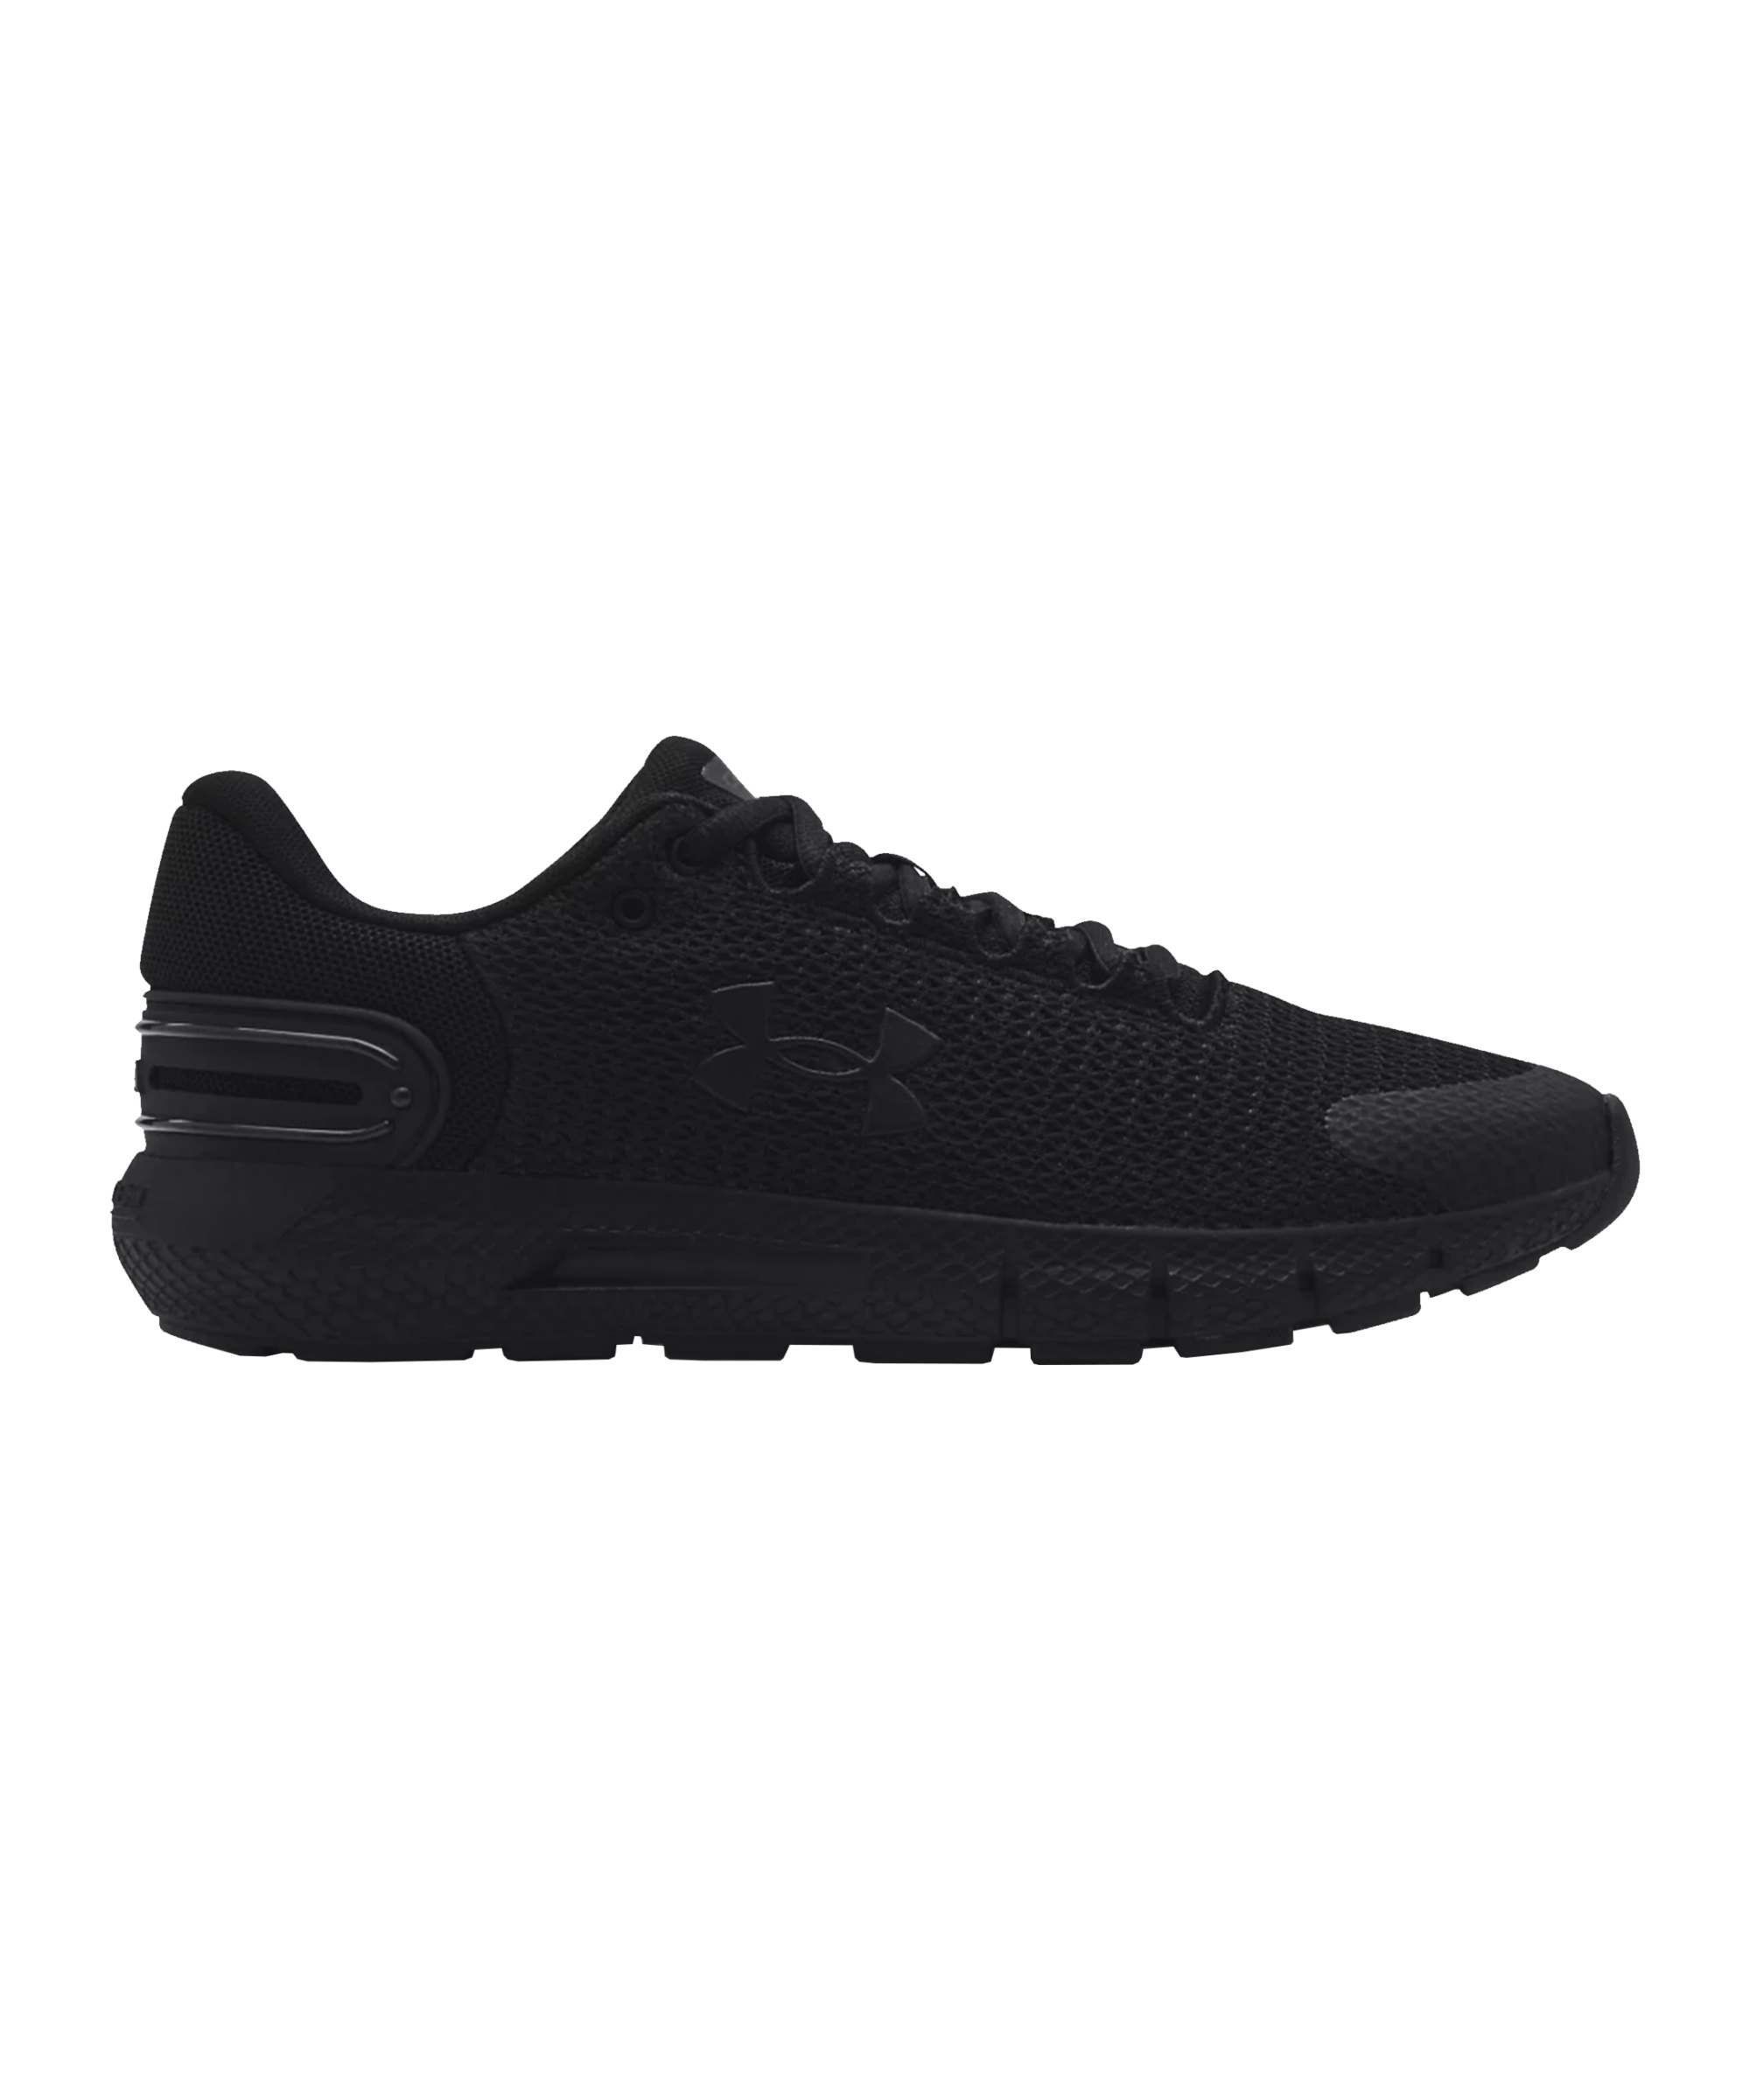 Under Armour Charged Rogue 2.5 Running F002 - schwarz